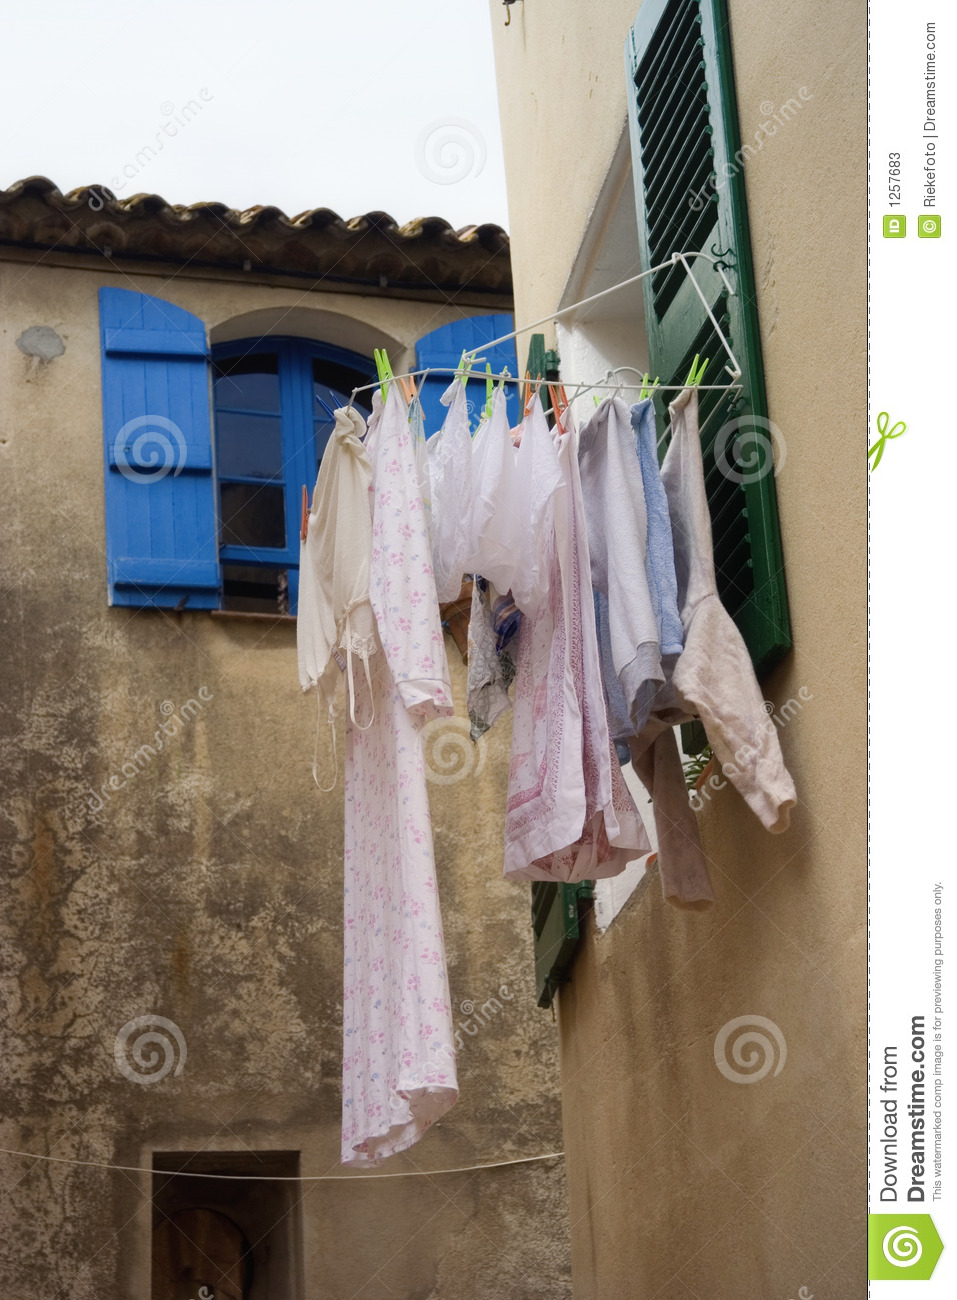 Laundry outdoors